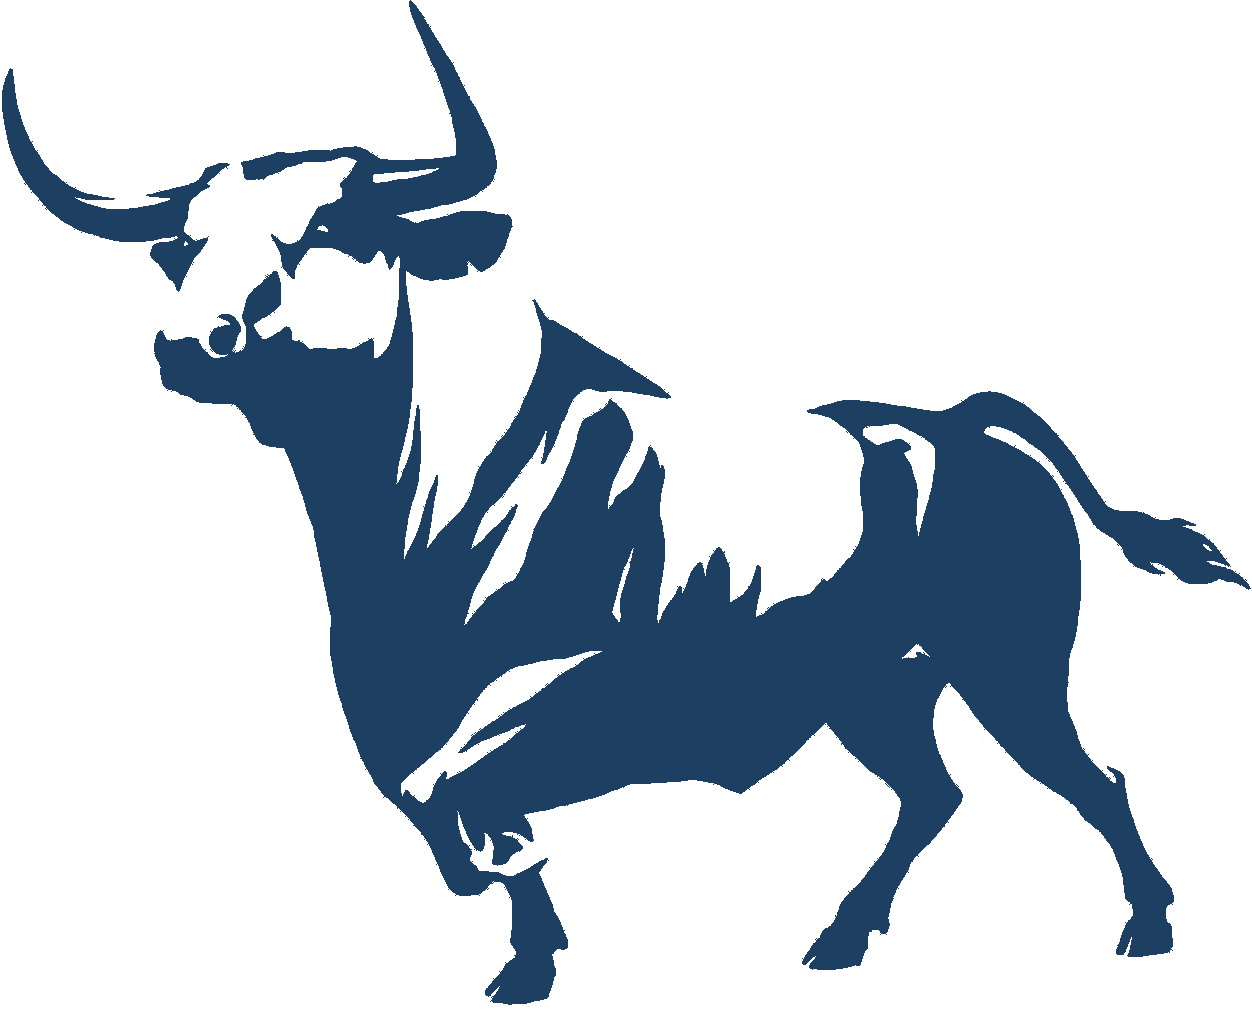 Longhorn clipart cattle drive. About blisk financial group